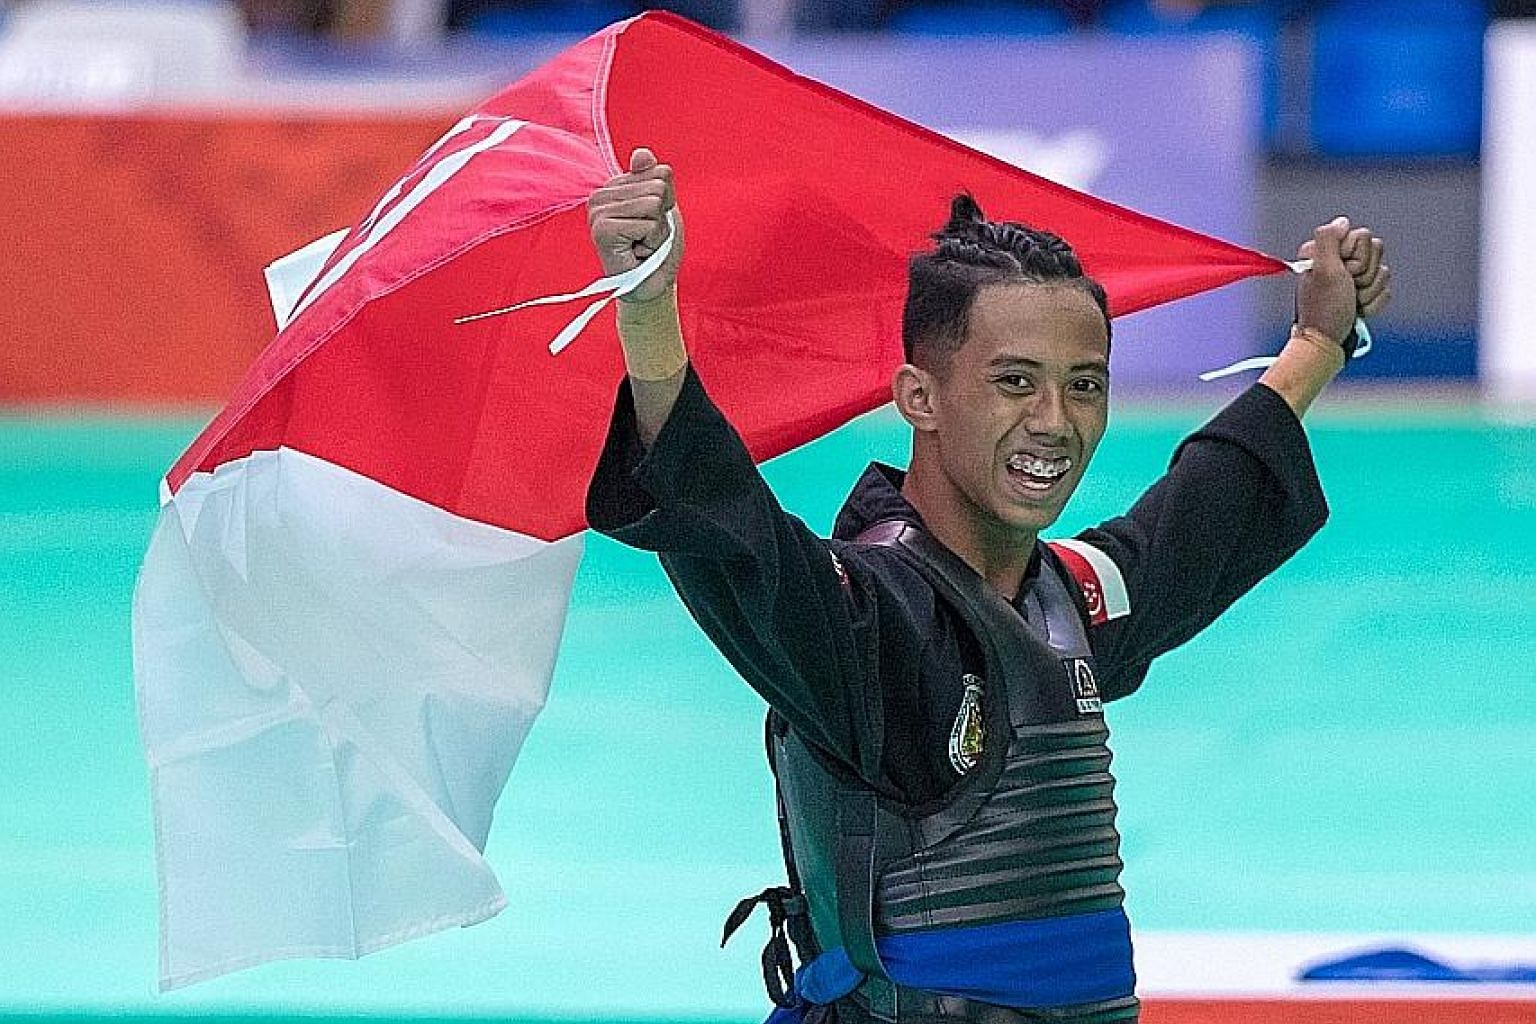 Singapore's Hazim Yusli celebrating his victory in the 50-55kg tanding (sparring) class yesterday. He got off to a shaky start in the final before beating Vietnam's Nguyen Dinh Tuan 4-1.